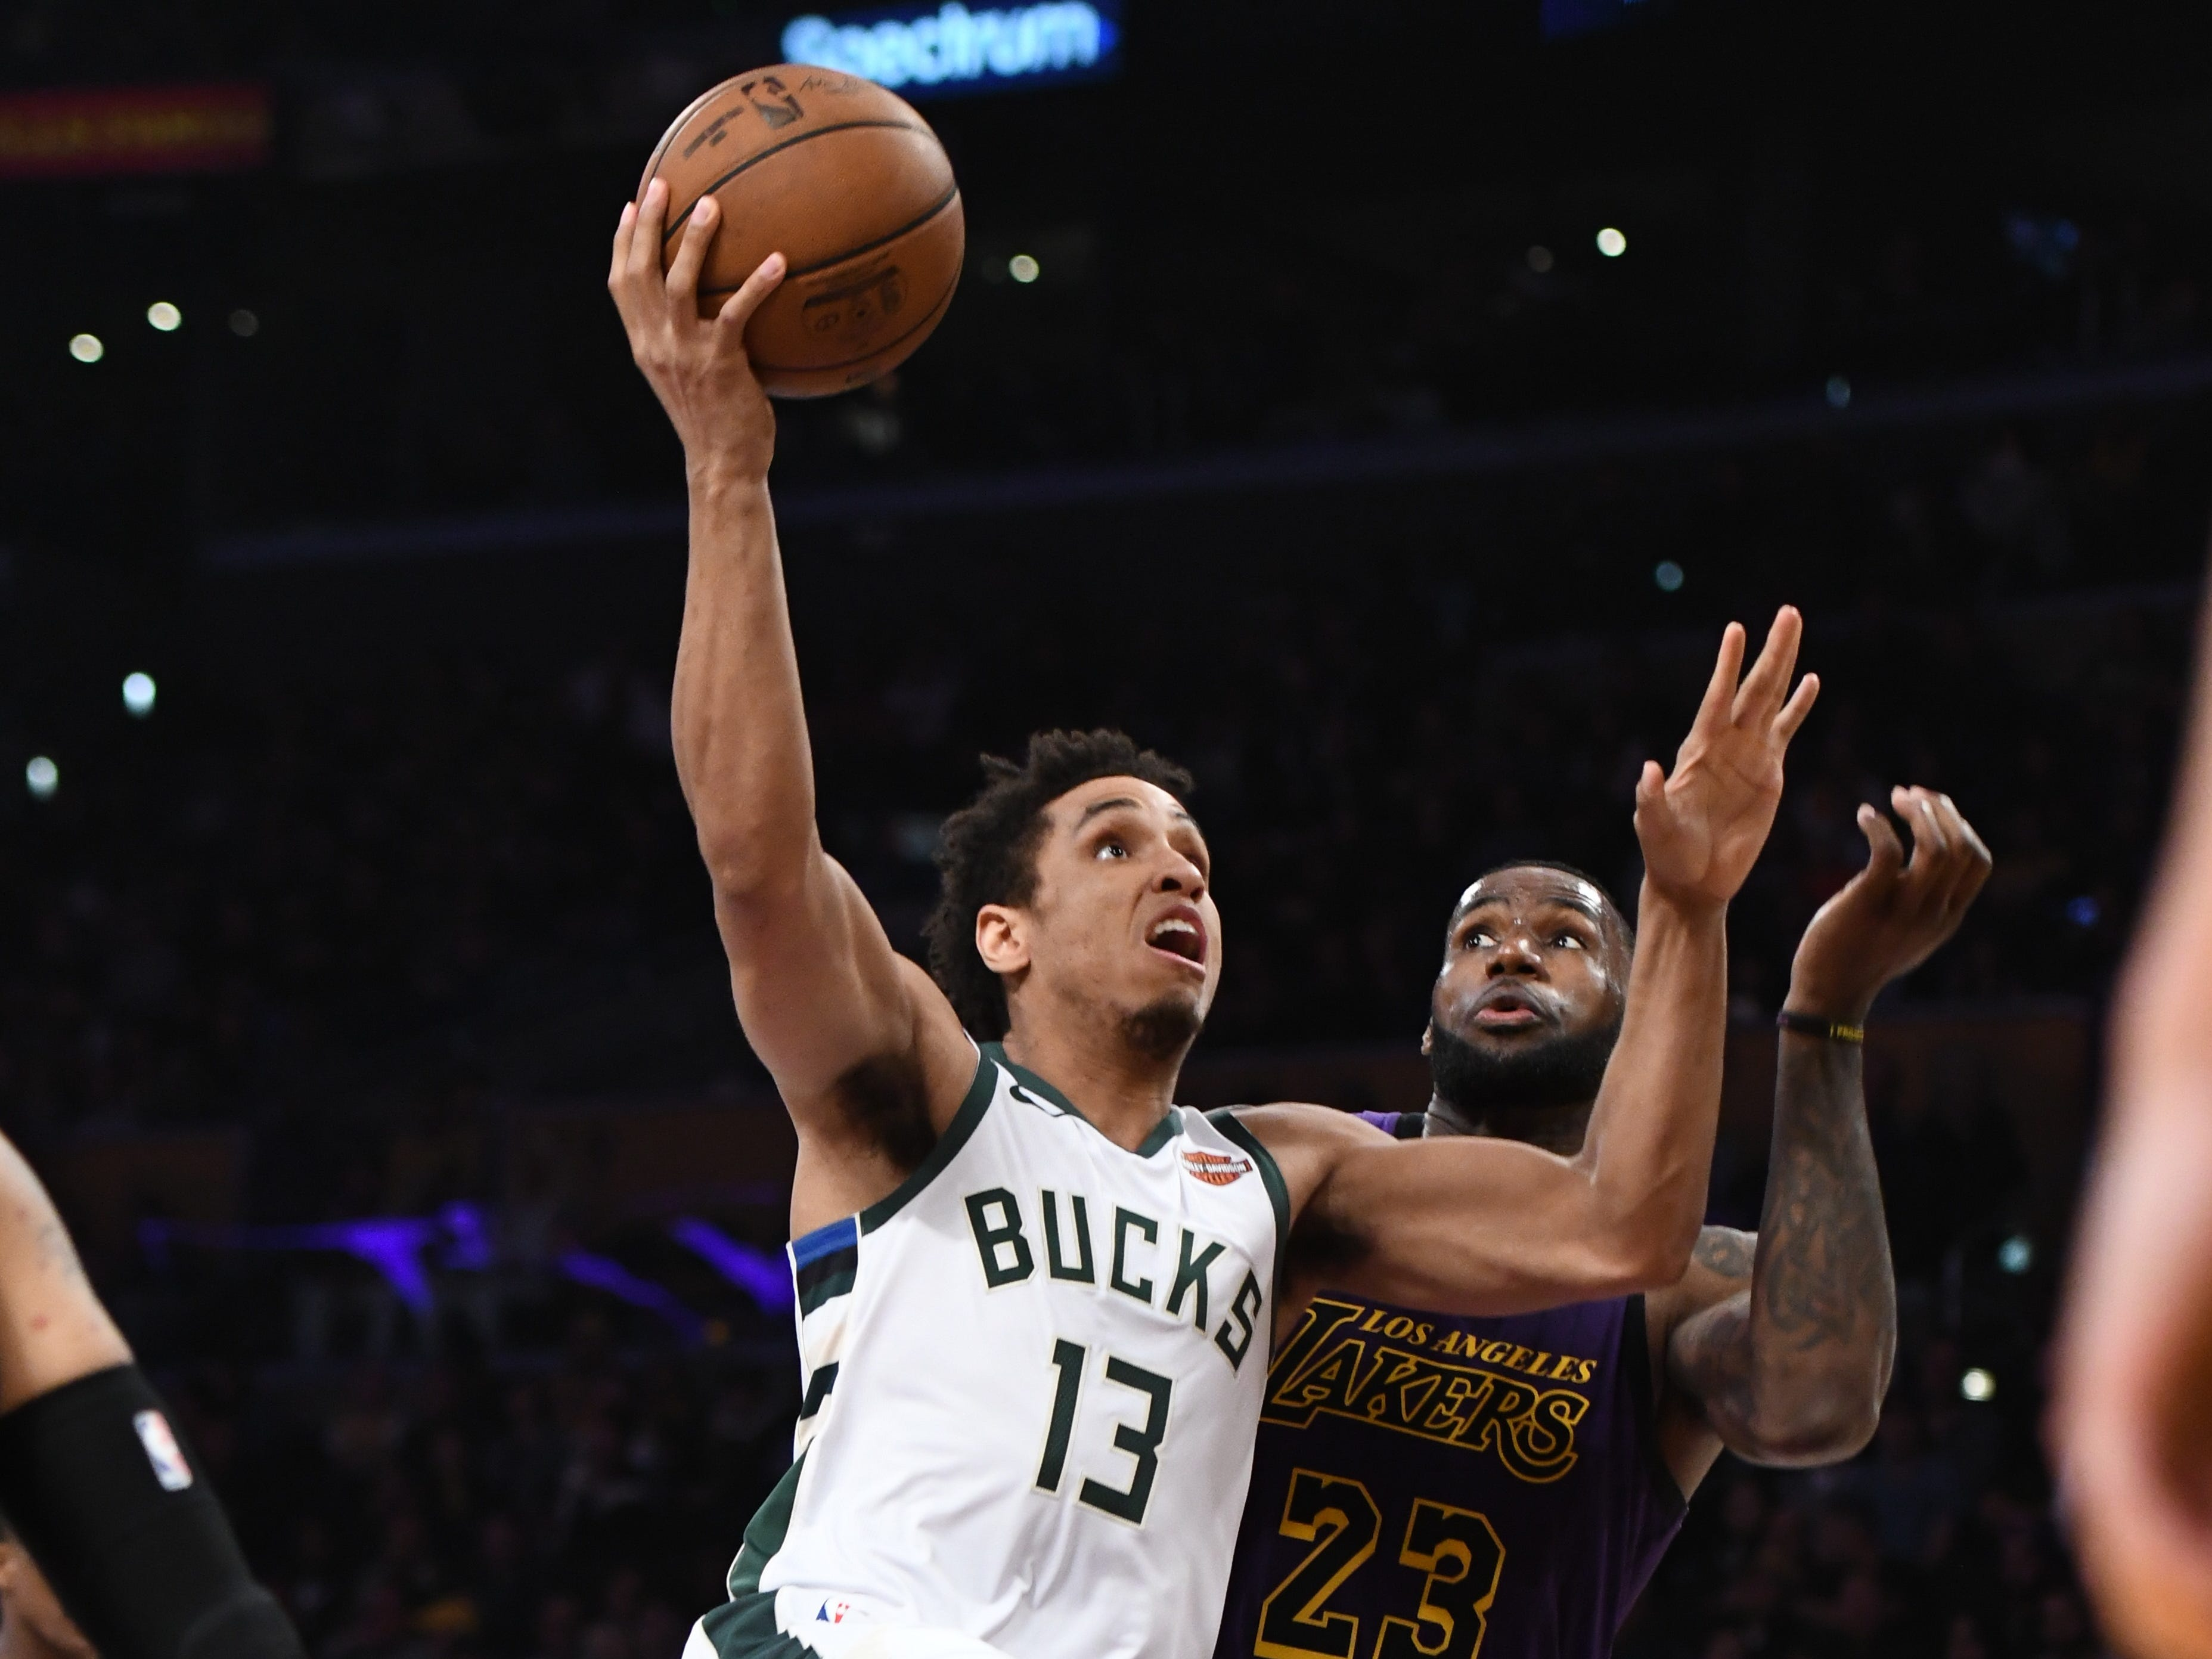 Bucks guard Malcolm Brogdon beats LeBron James of the Lakers to the basket for a layup during the second half.